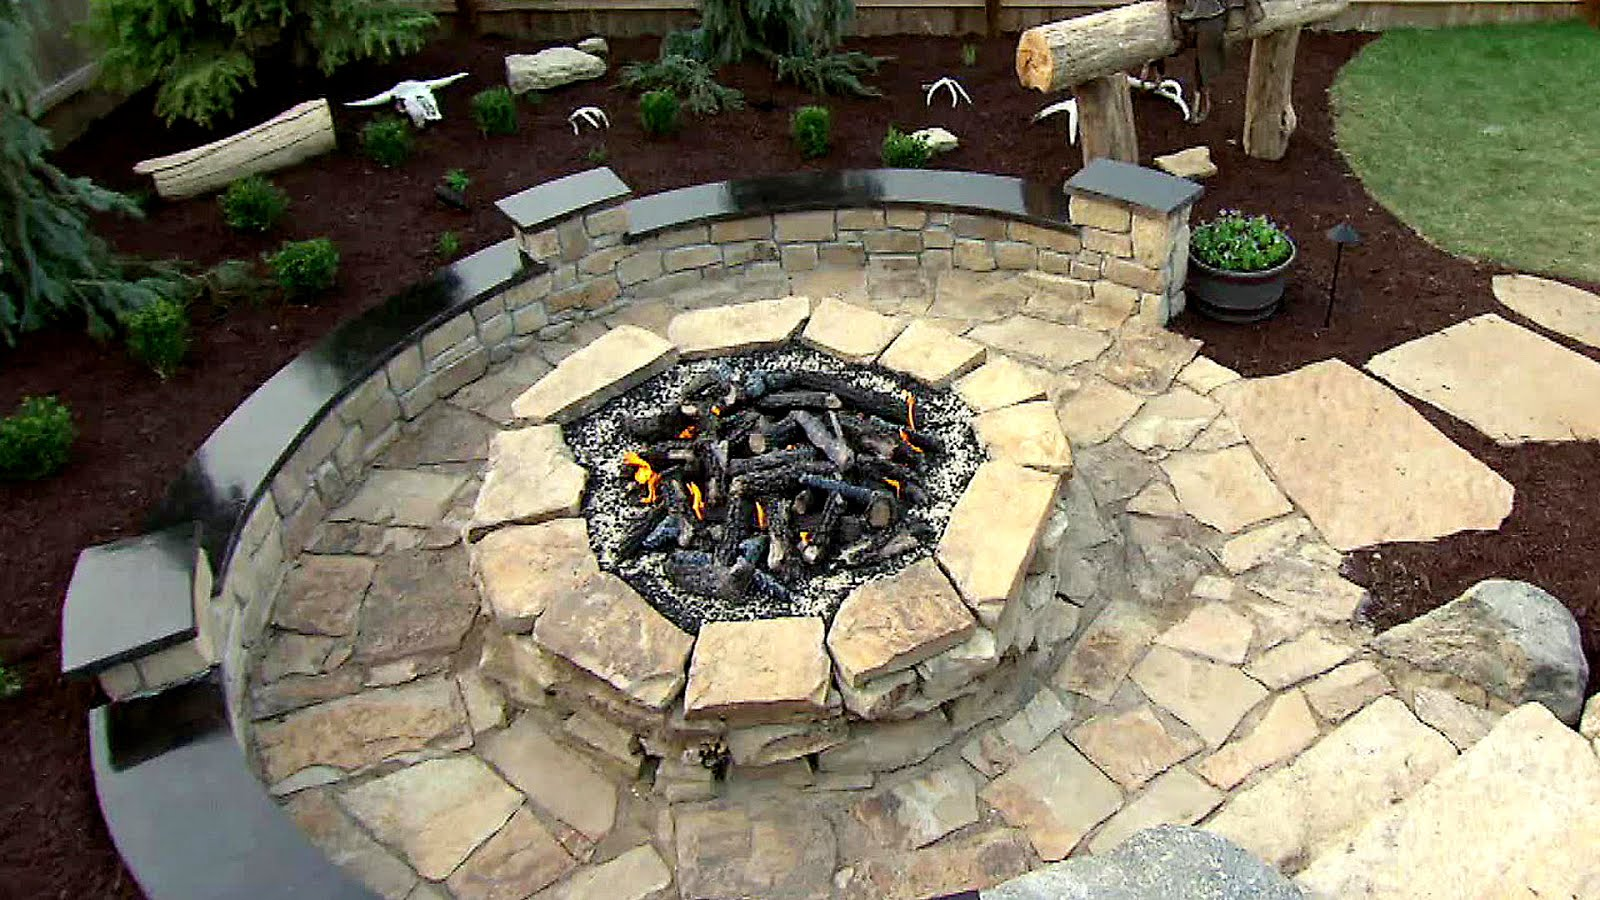 How To Dig A Fire Pit In Your Backyard - Fire Choices